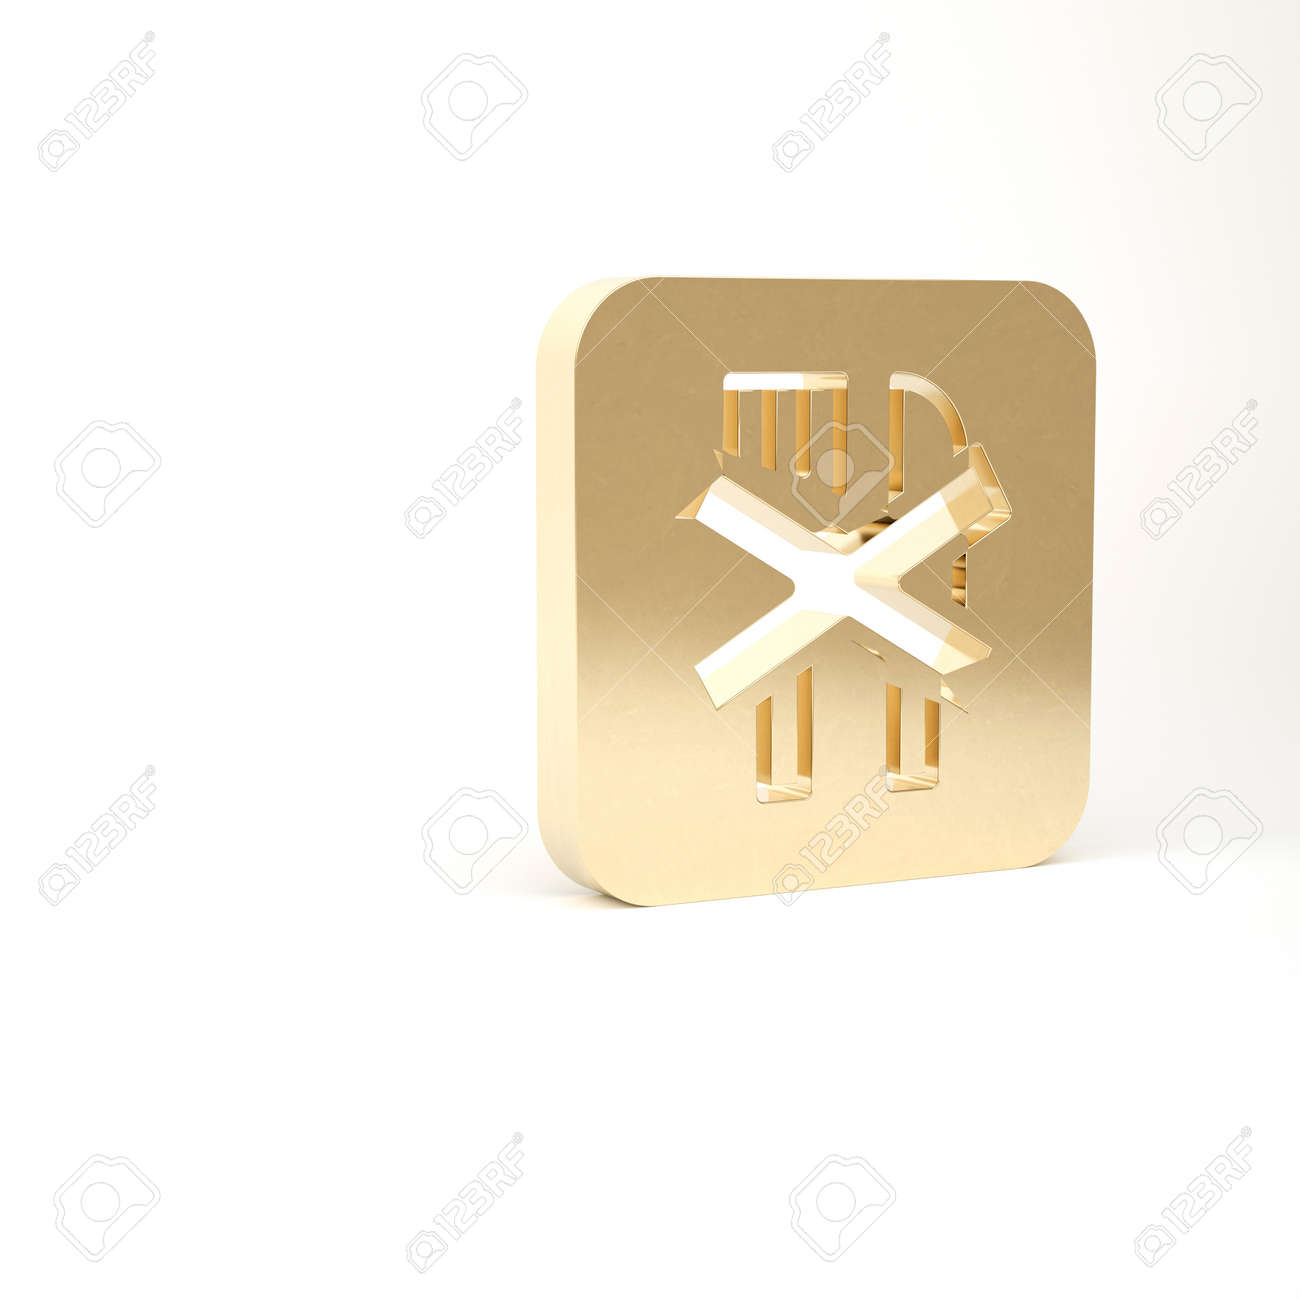 Gold Ramadan fasting icon isolated on white background. Religious fasting. 3d illustration 3D render - 169797686